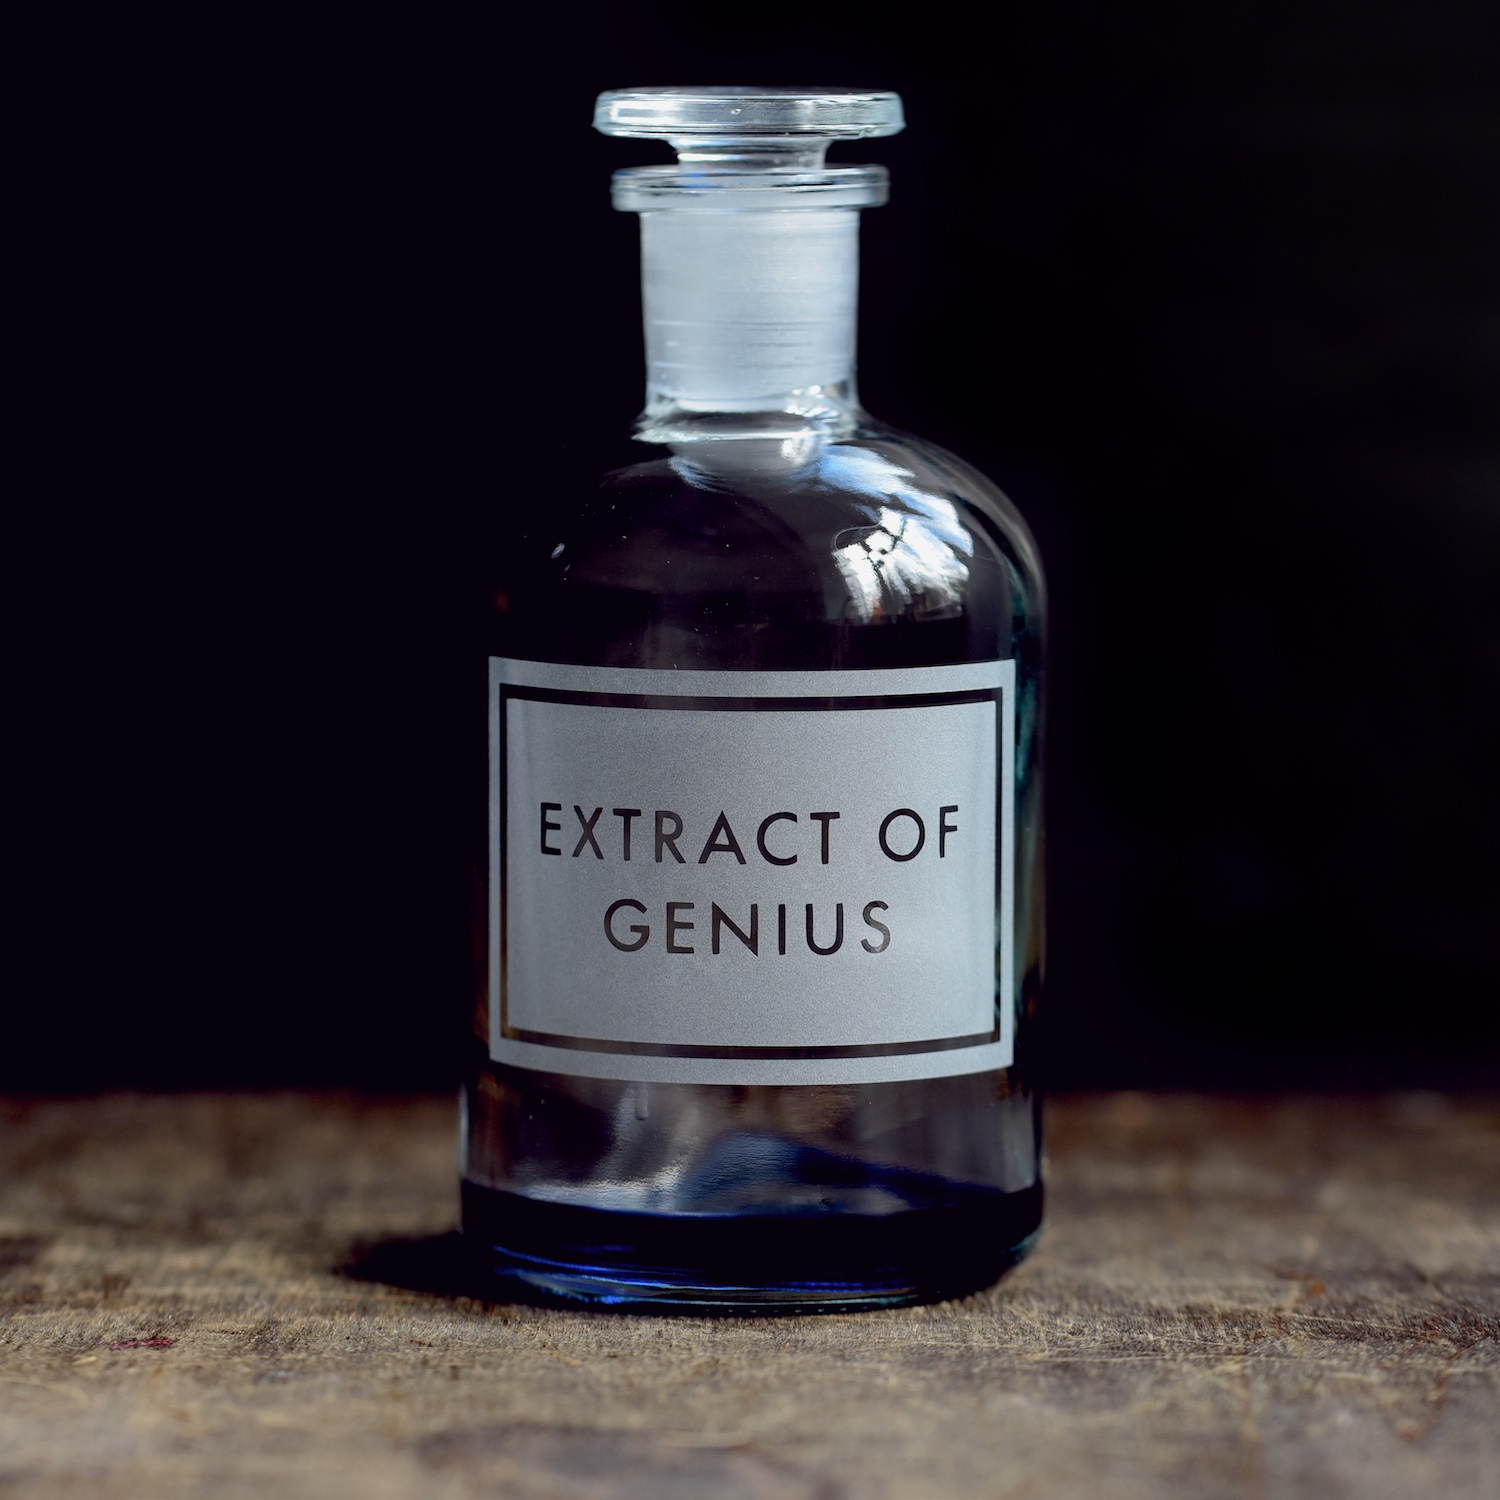 extract-of-genius-etched-apothecary-bottle-vinegar-and-brown-paper.jpg